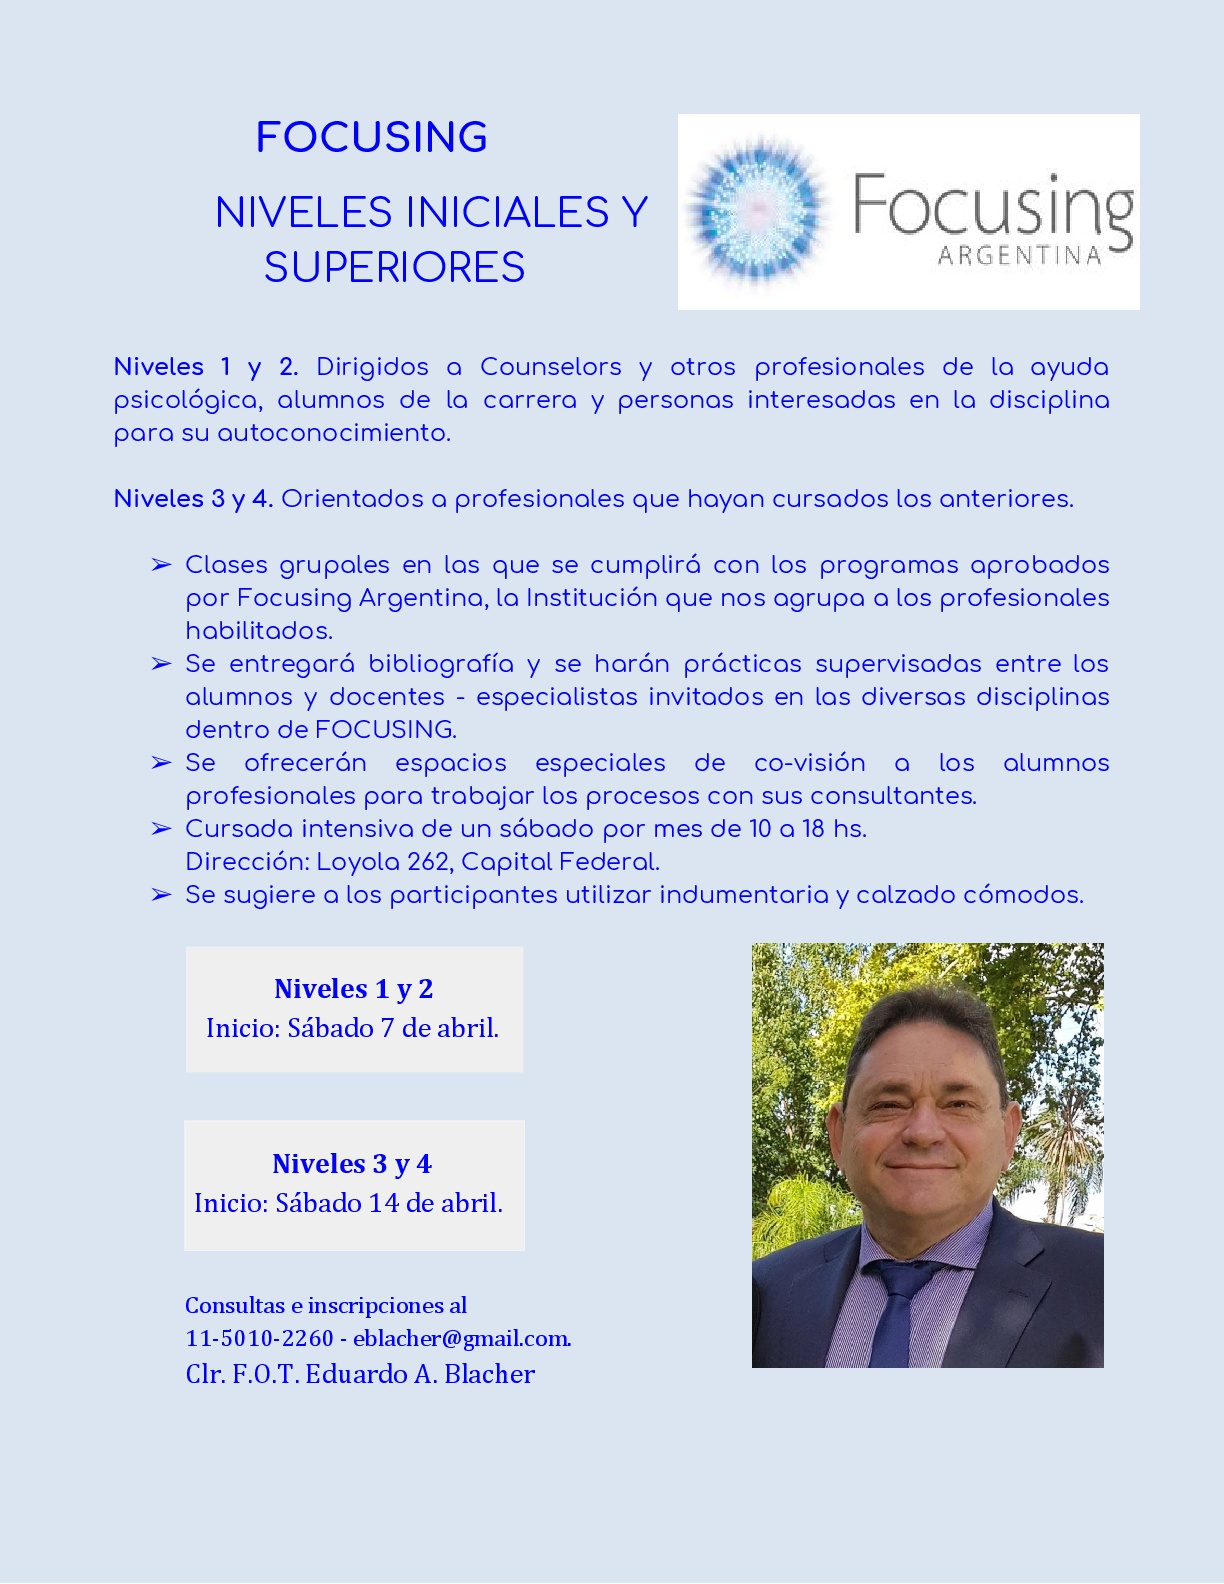 Focusing 2018 Intensivo